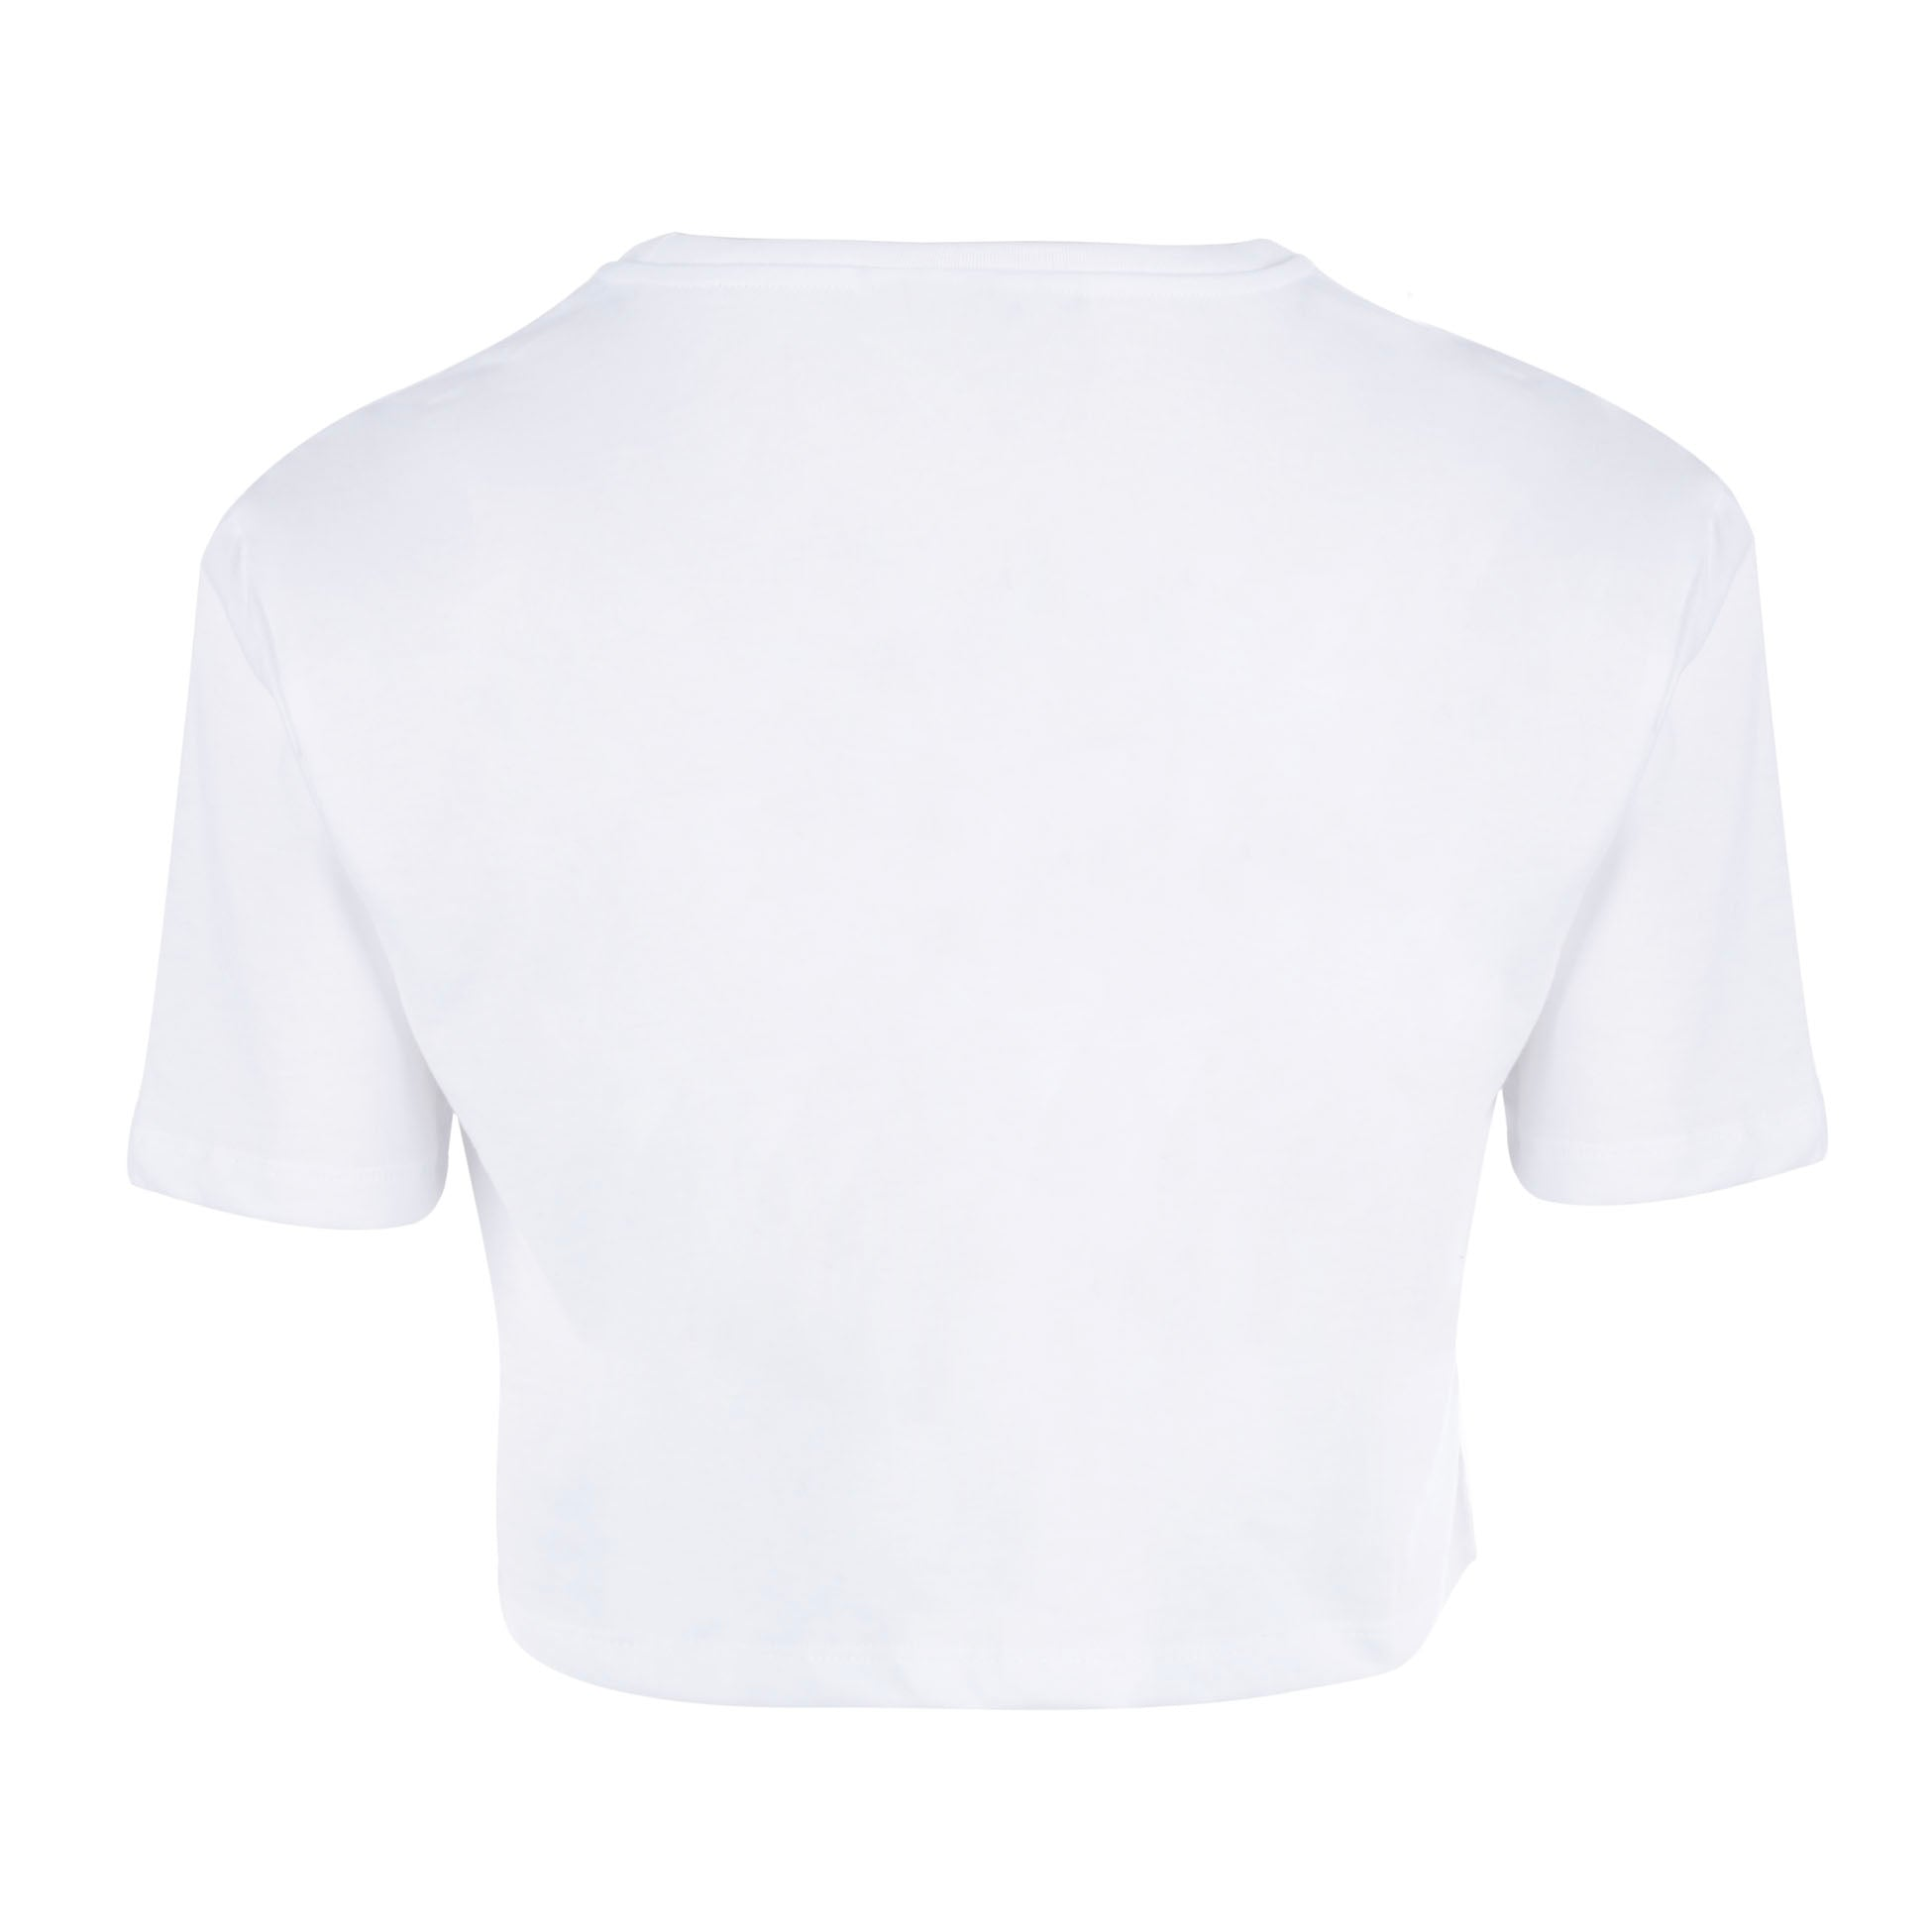 CROP TOP TSHIRT SIGNATURE PMF WHITE